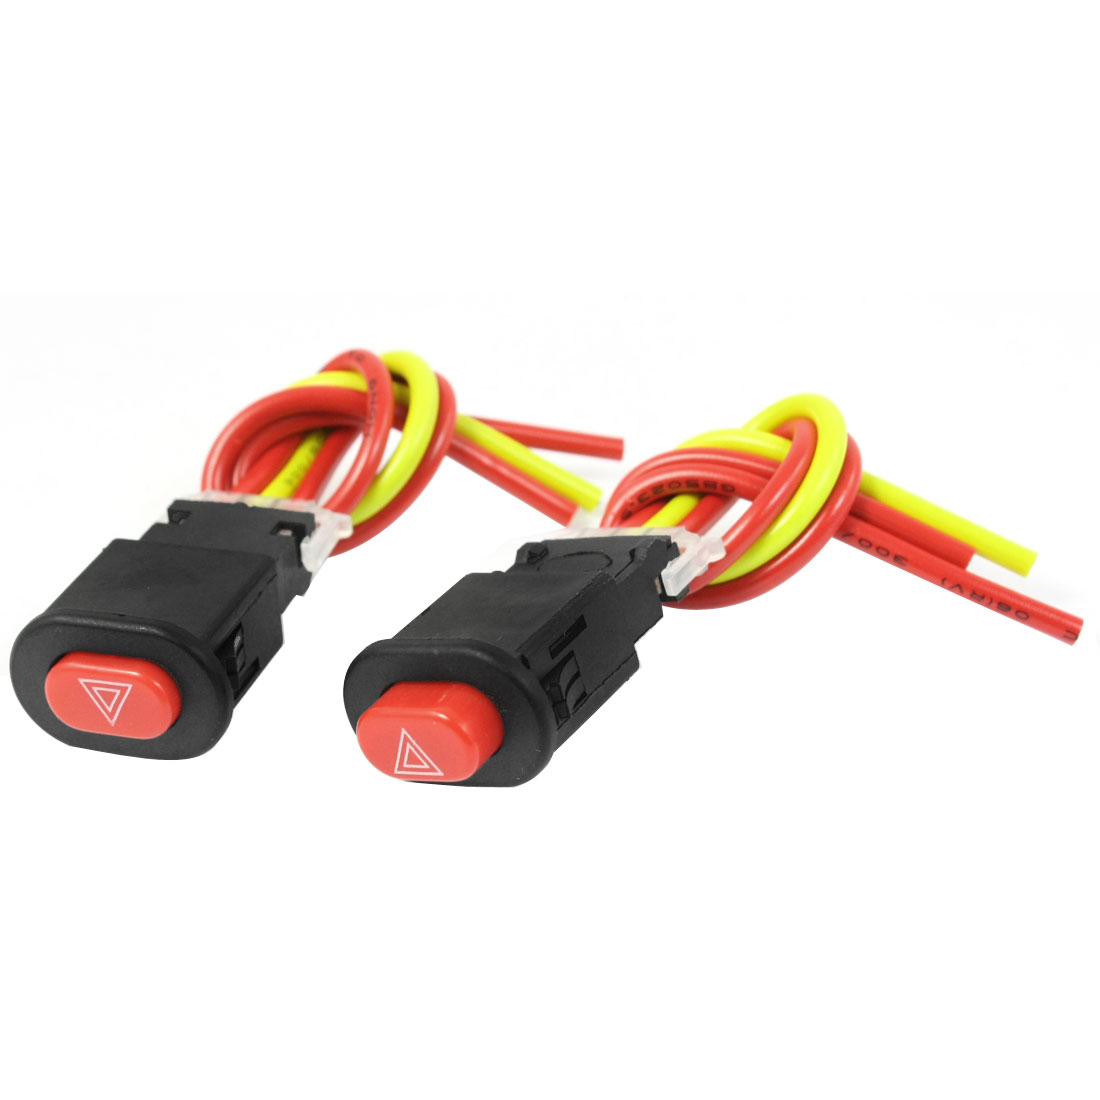 2PCS Red Button Wired Latching Type Light Switch Controller for Motorcycle